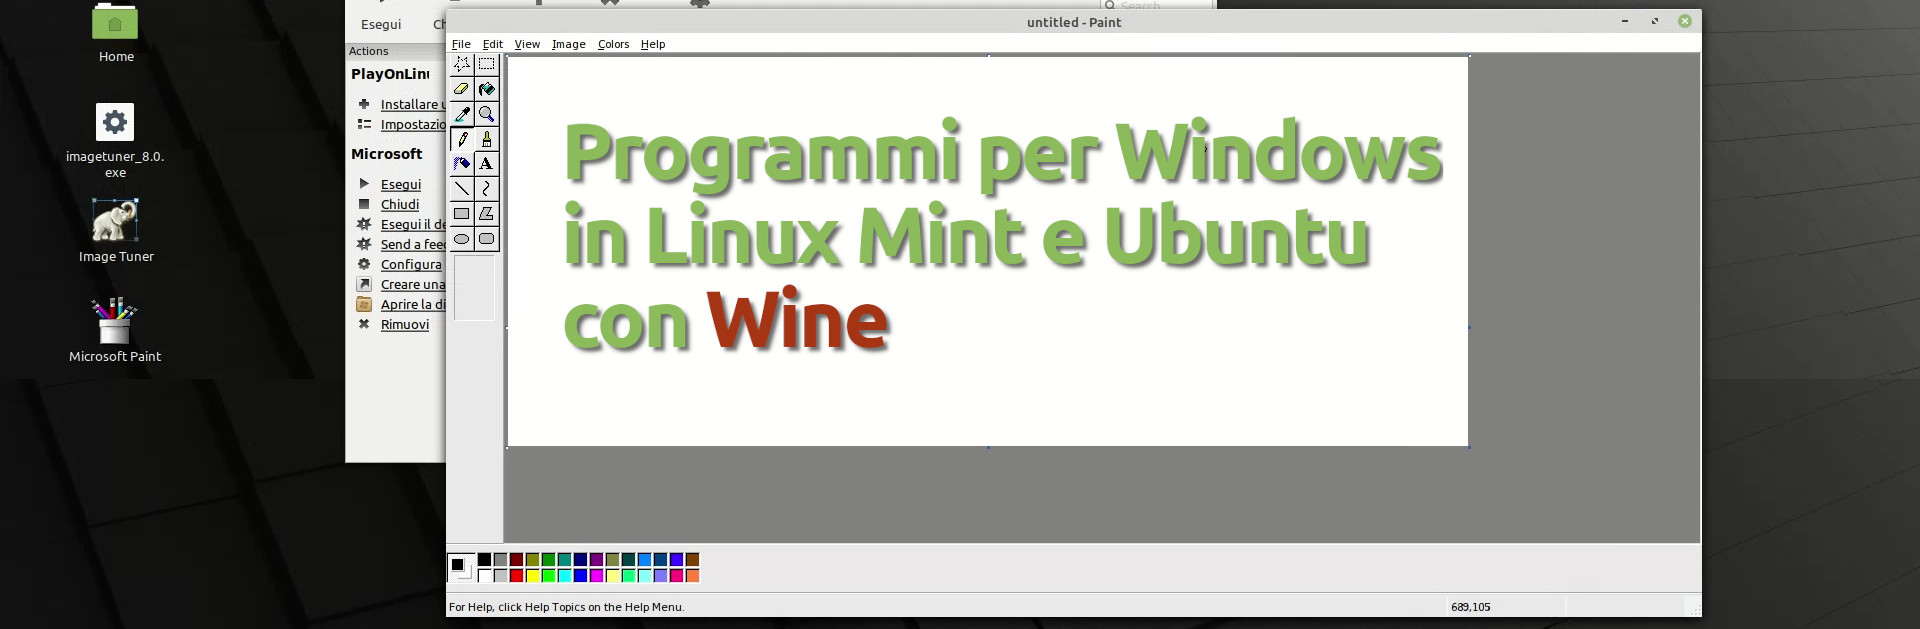 programmi windows in linux mint 20 e ubuntu con wine